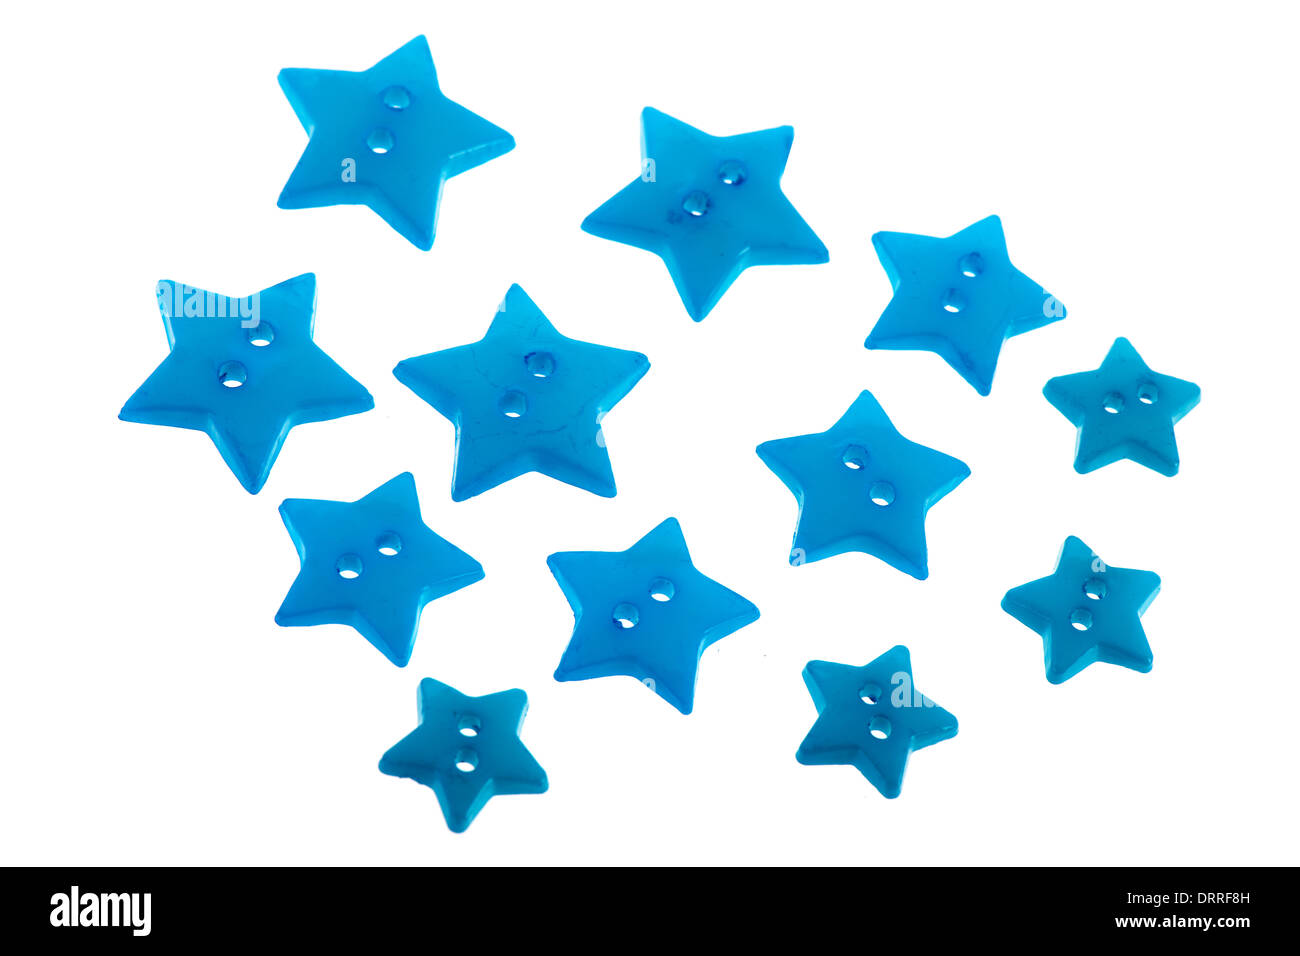 Several Blue Buttons In Star Shape Isolated Over White Background